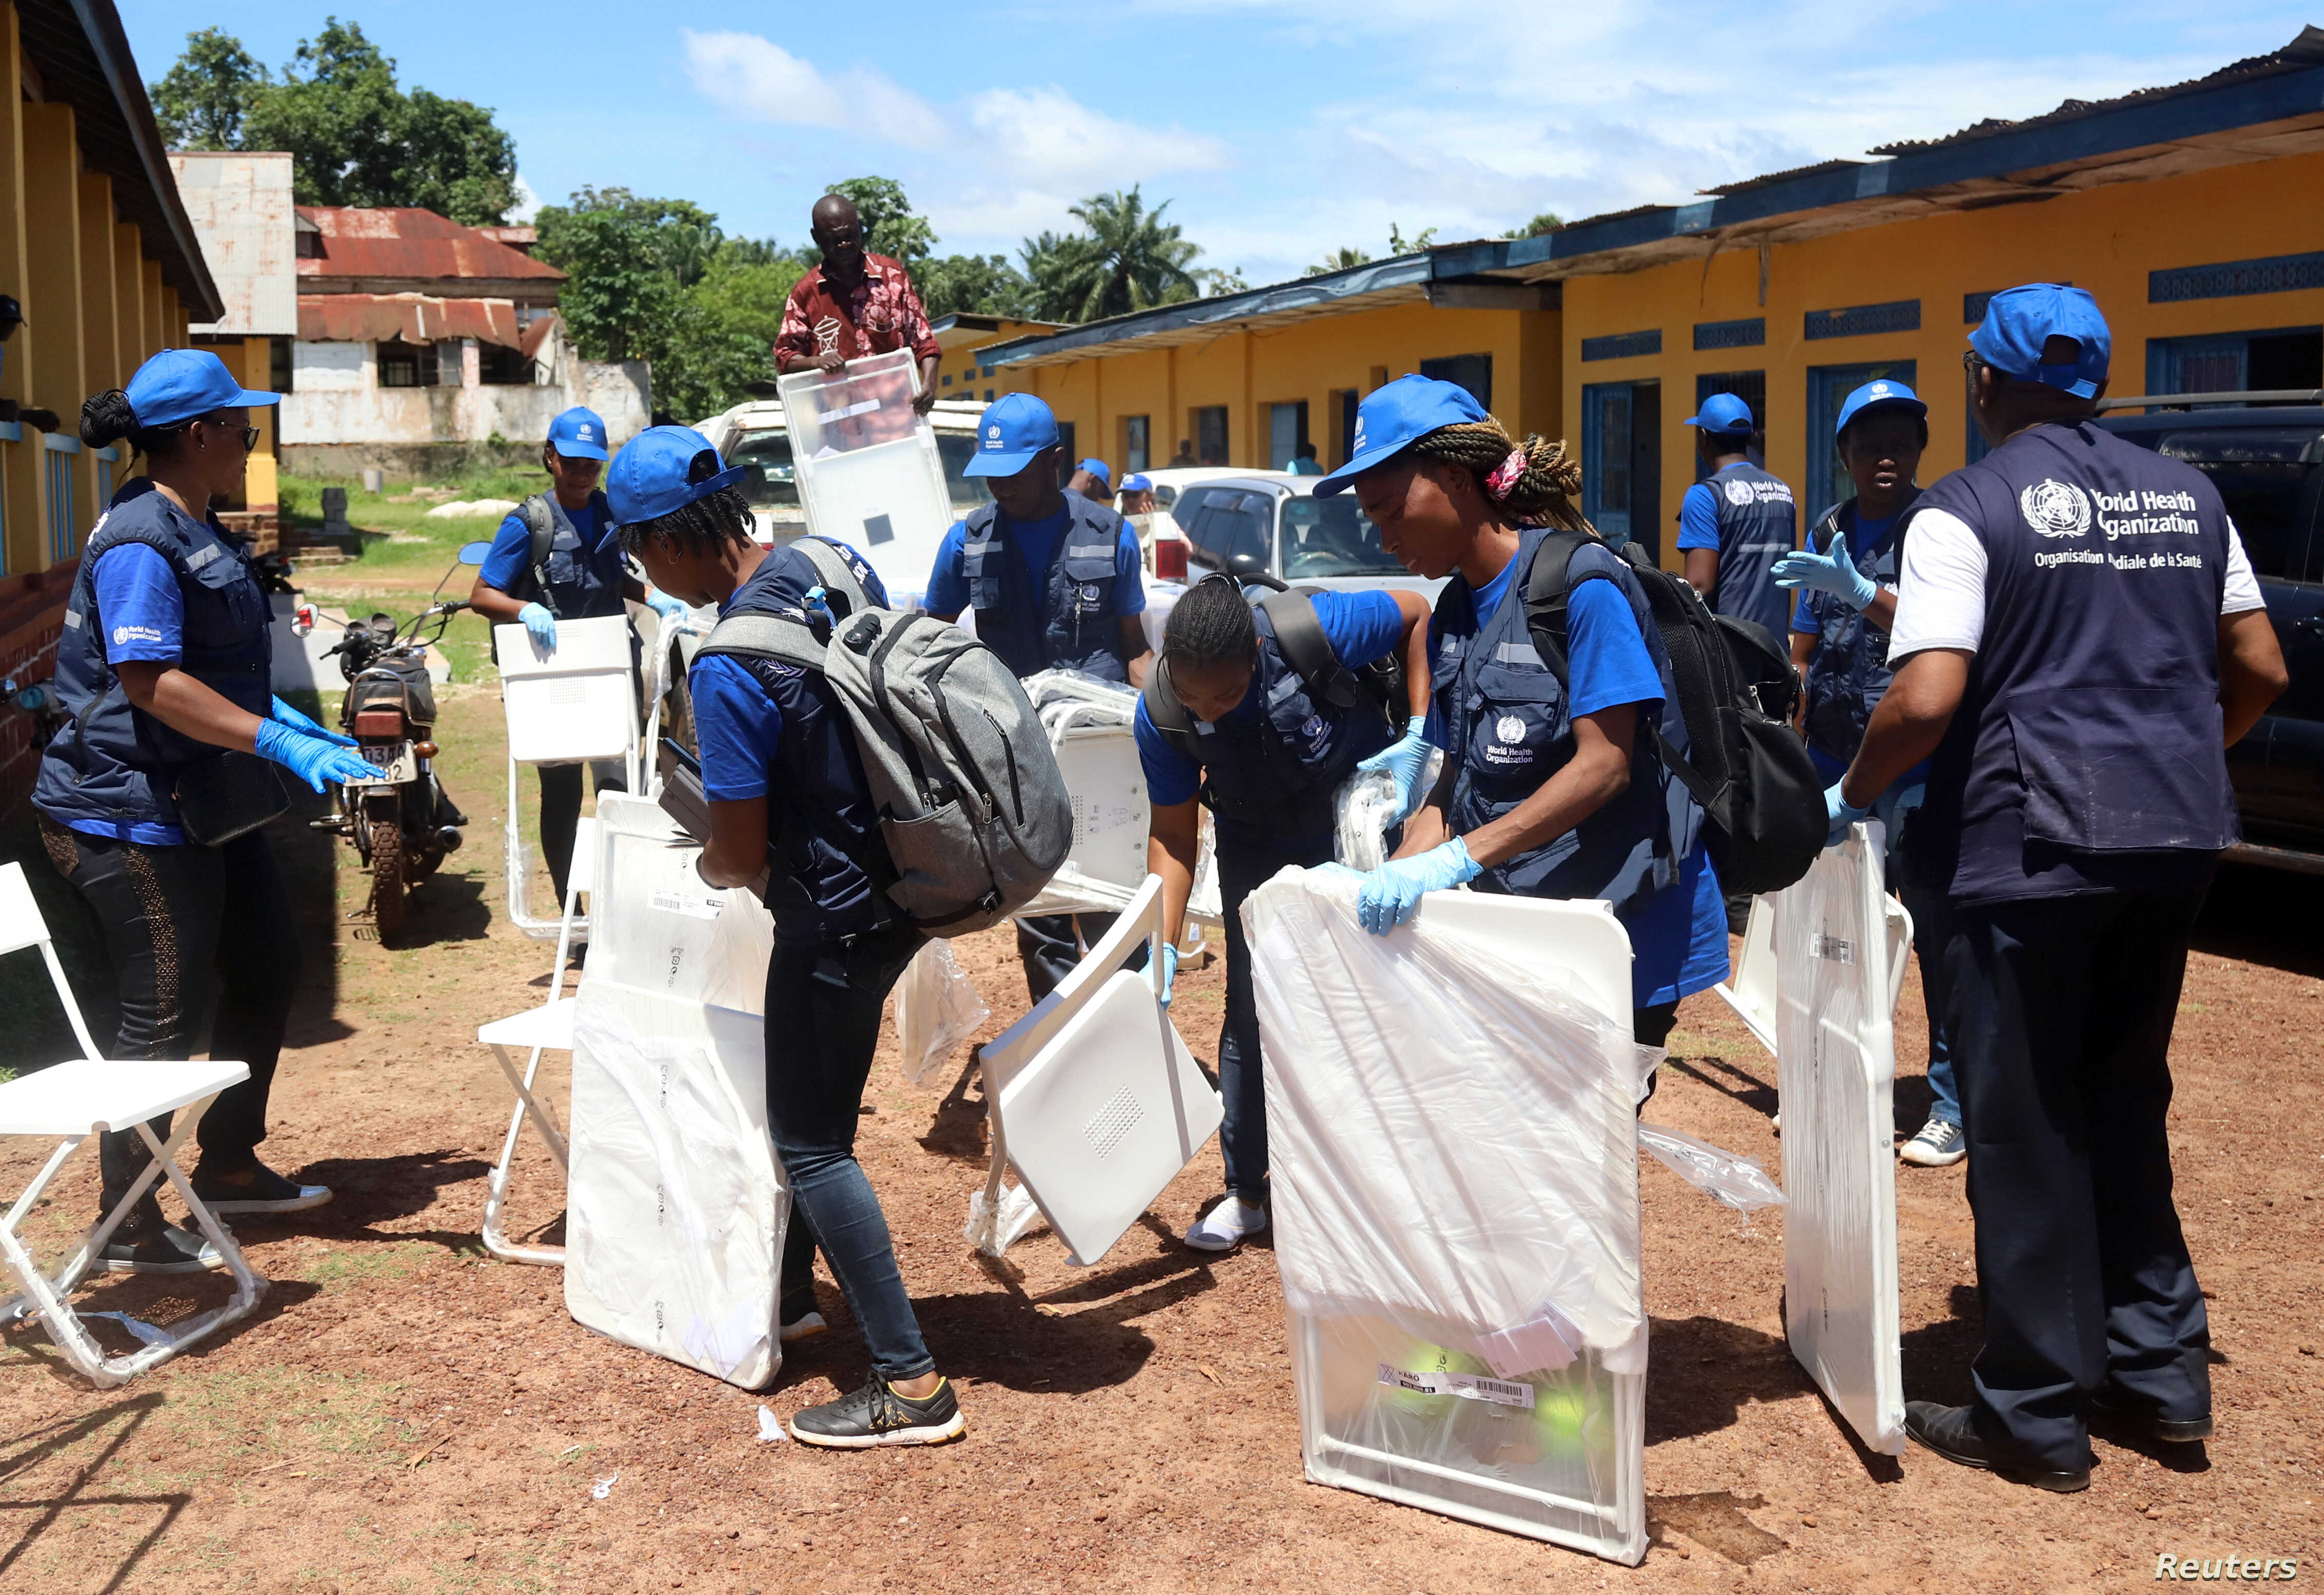 World Health Organization (WHO) workers prepare a centre for vaccination during the launch of a campaign aimed at beating an outbreak of Ebola in the port city of Mbandaka, Democratic Republic of Congo, May 21, 2018.